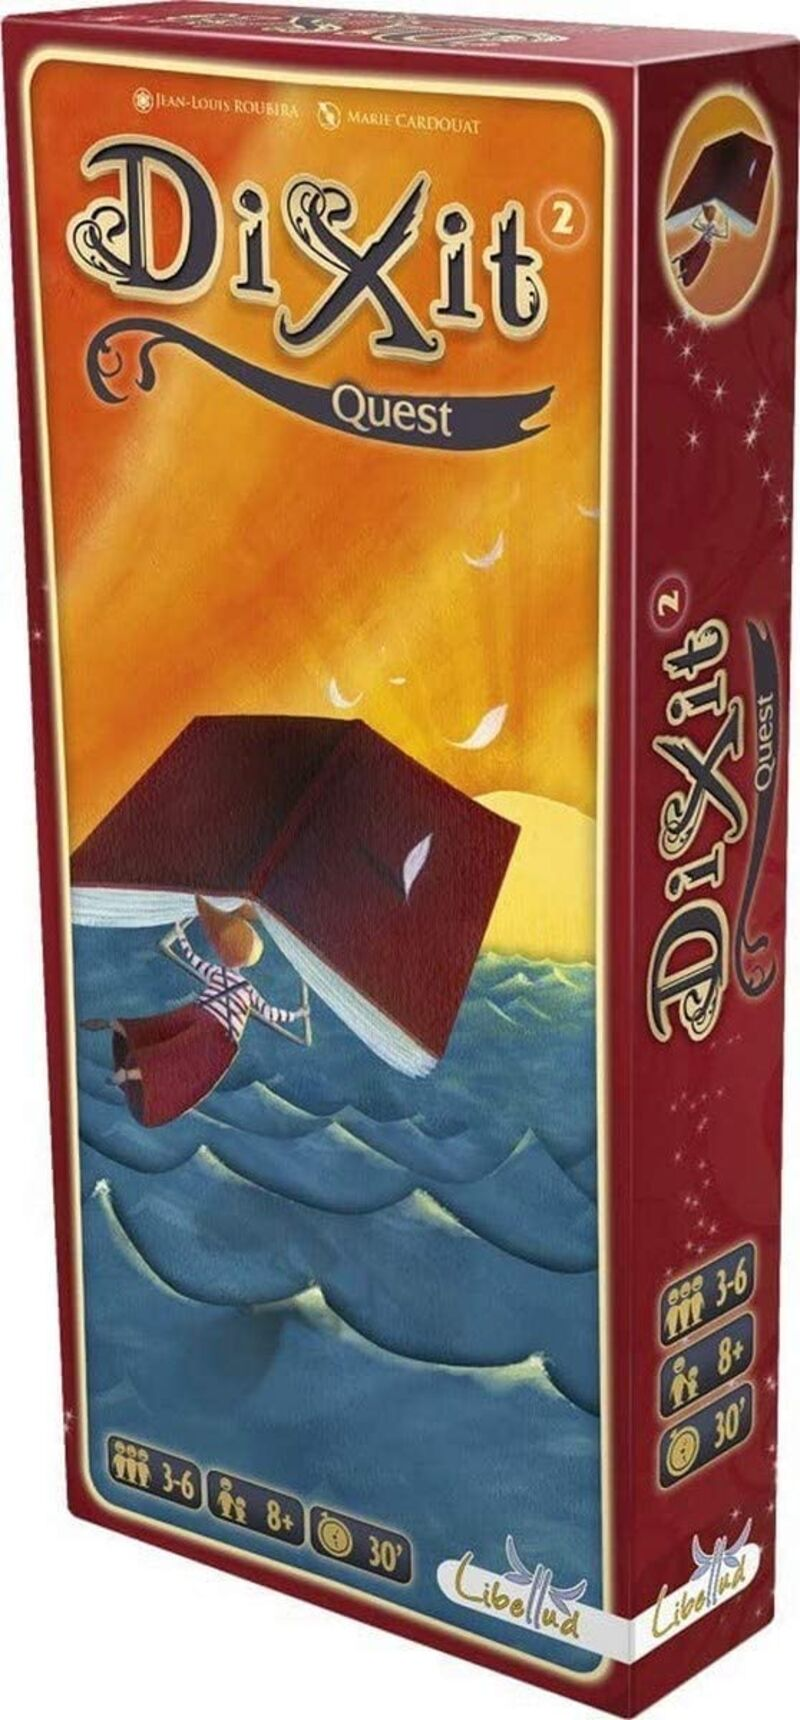 Dixit 2 - Quest R: Dix02ml4 -